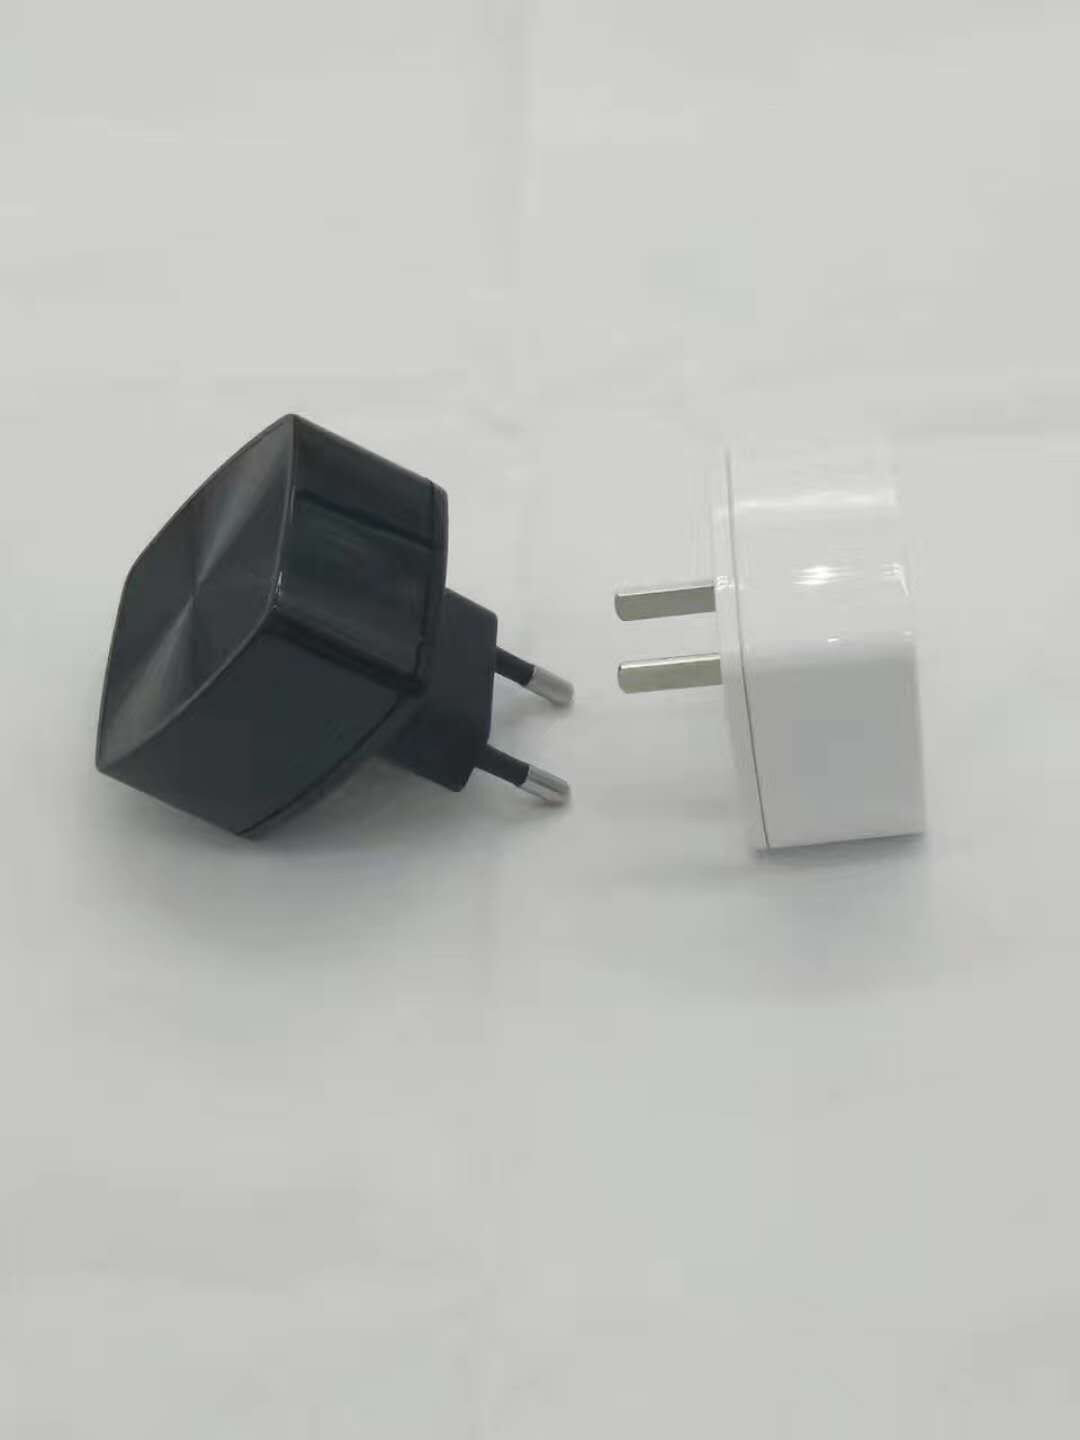 ST1110 Travel charger